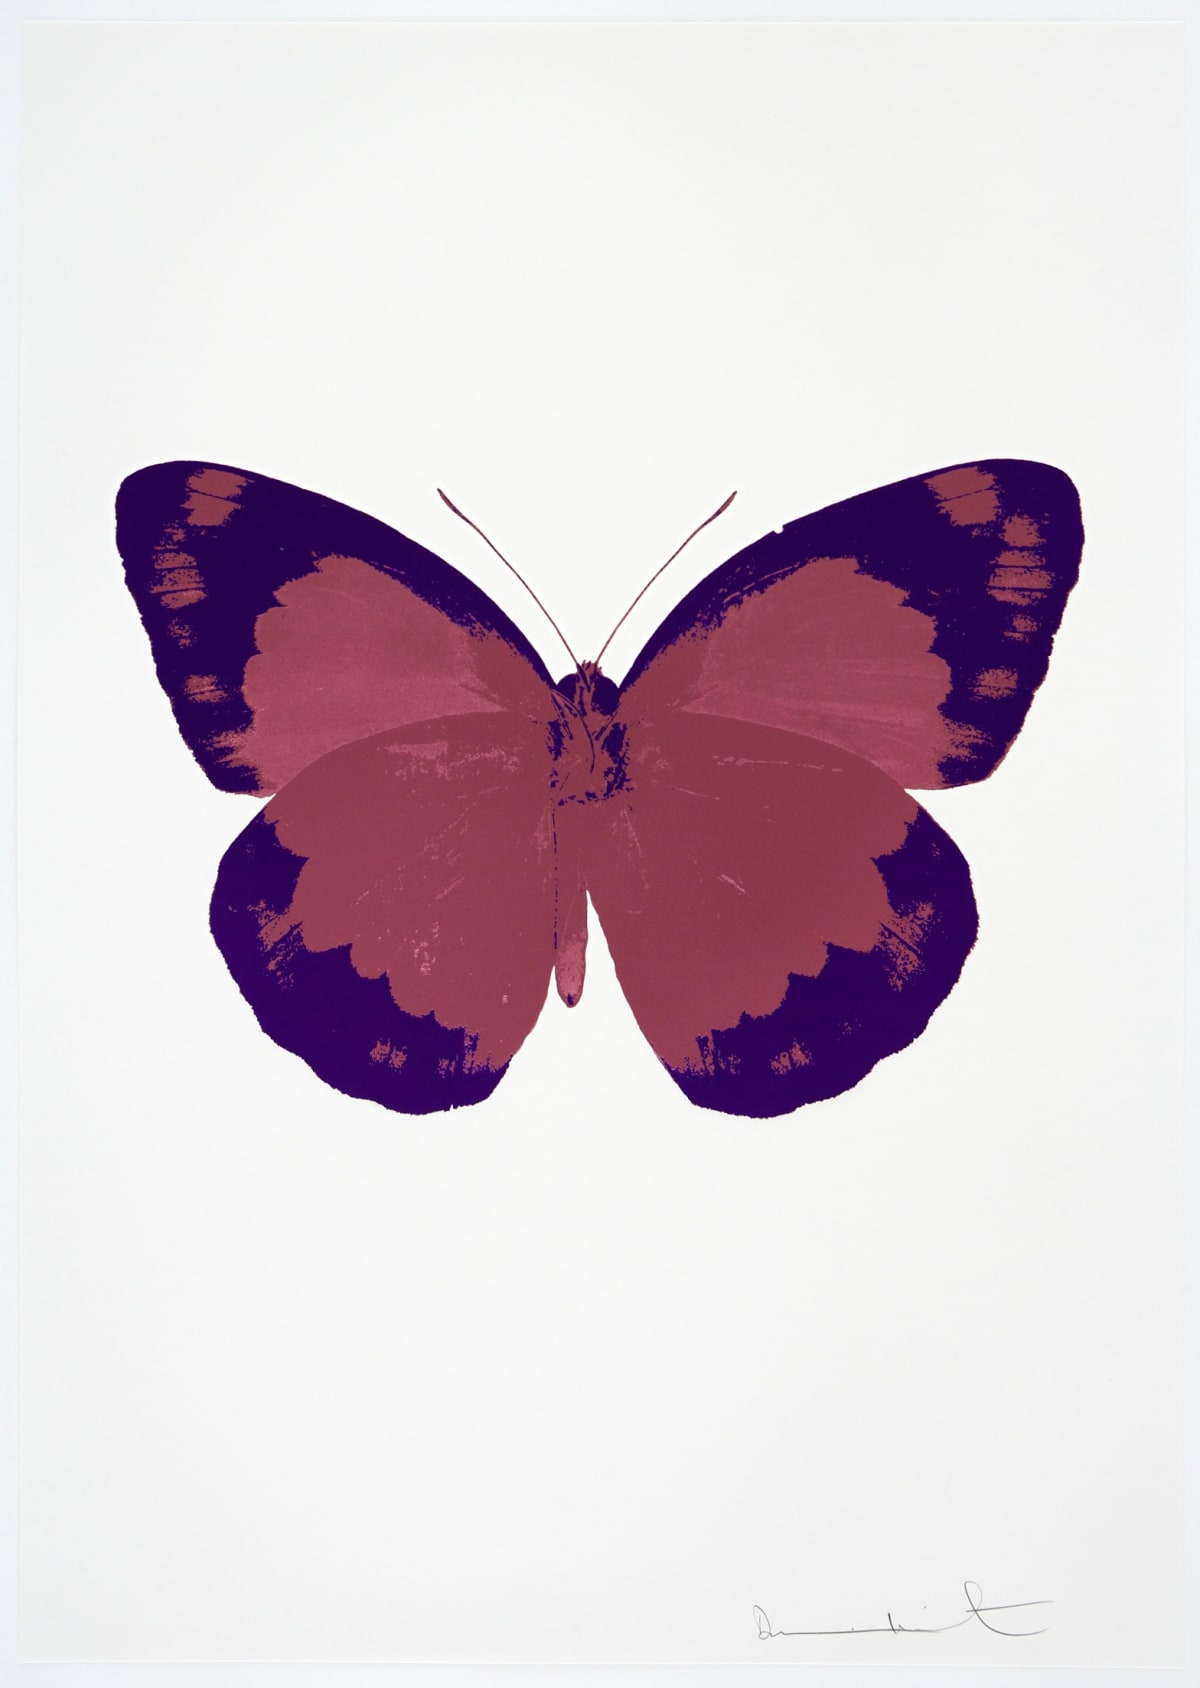 Damien Hirst The Souls II - Loganberry Pink/Imperial Purple/Blind Impression, 2010 2 colour foil block on 300gsm Arches 88 archival paper. Signed and numbered. Published by Paul Stolper and Other Criteria 72 x 51cm OC7828 / 658-11 Edition of 15